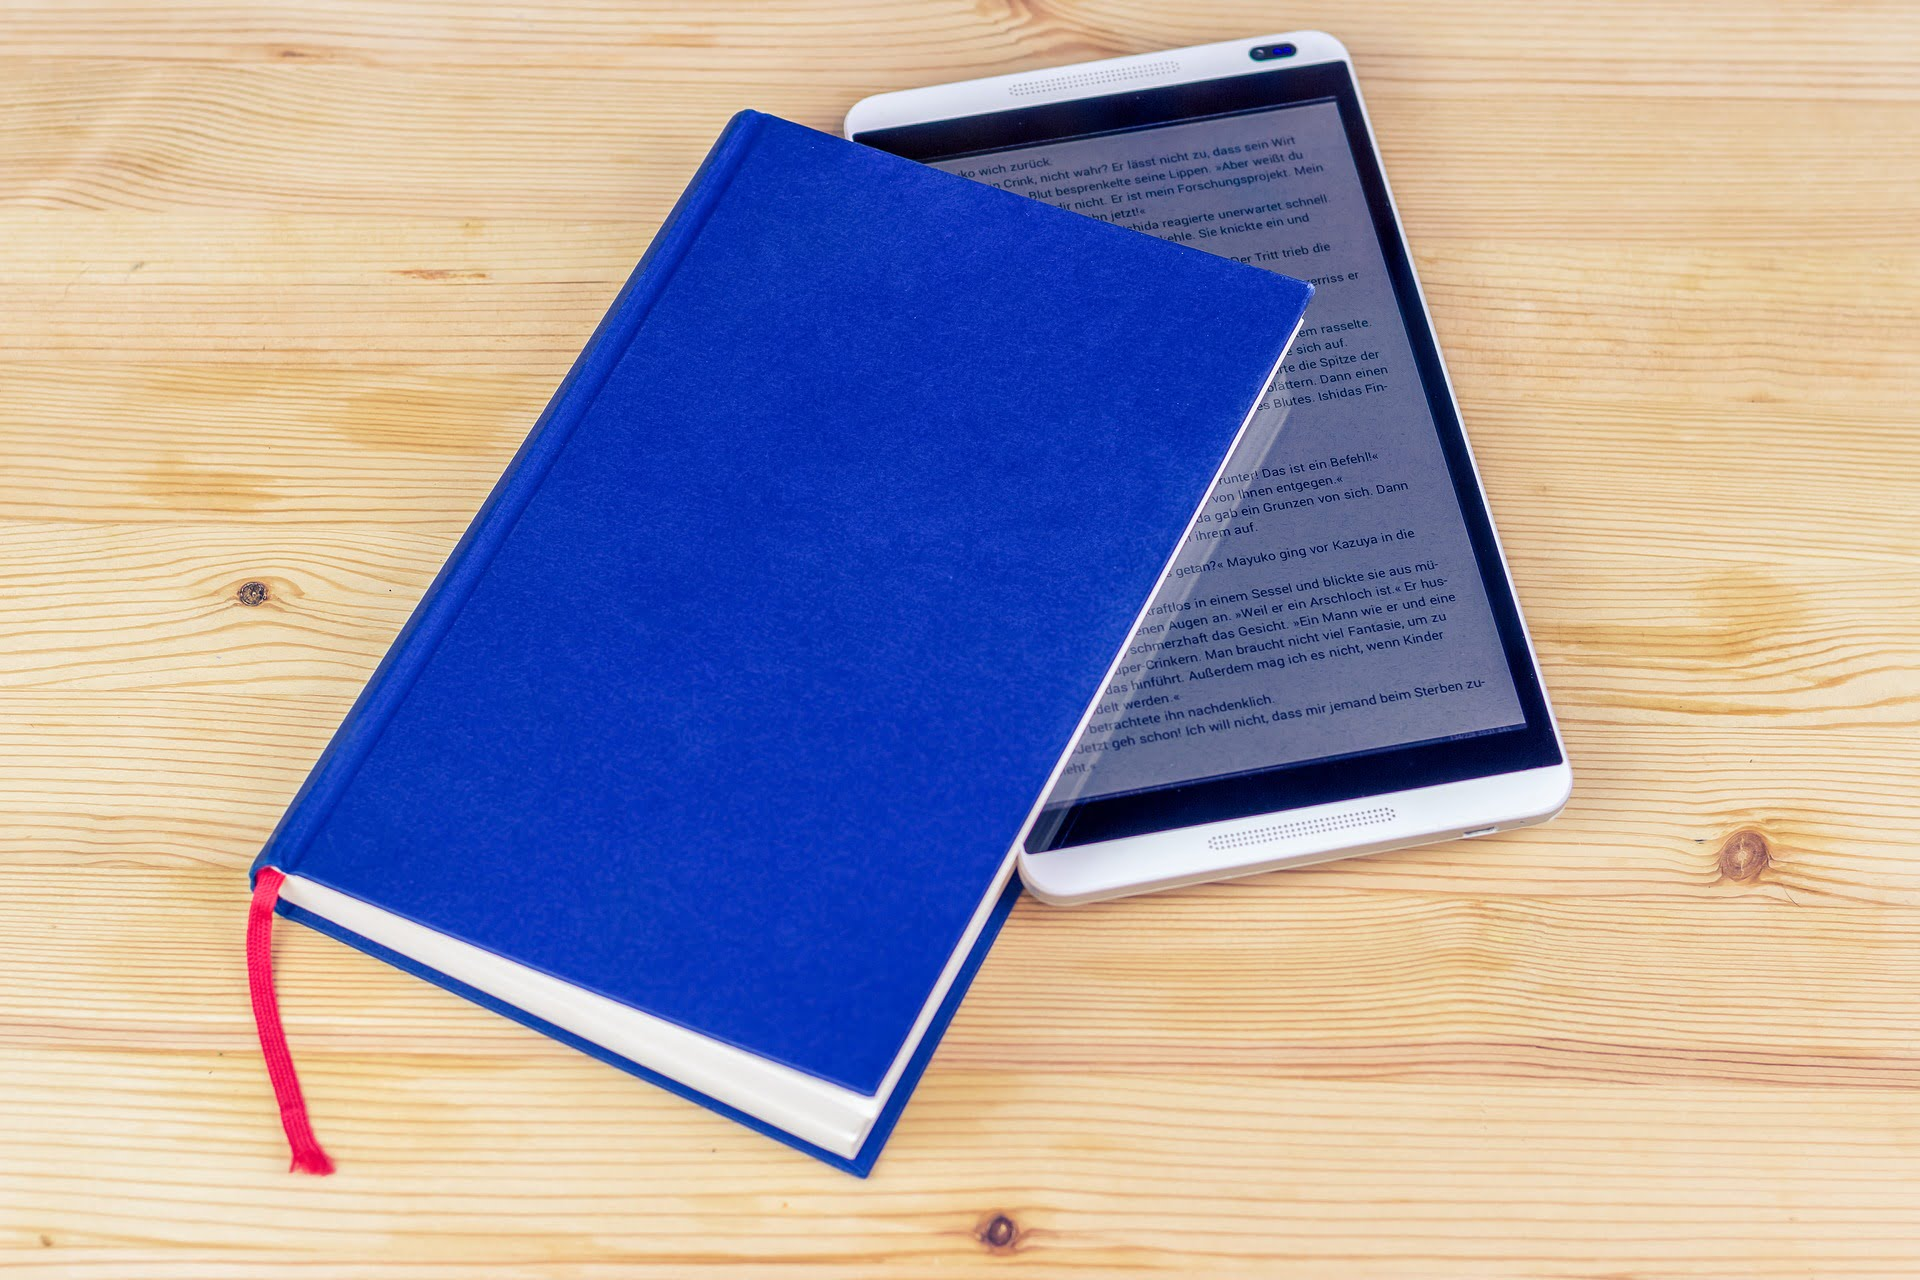 A photo of the tablet with an ebook opened, placed inside a blue book